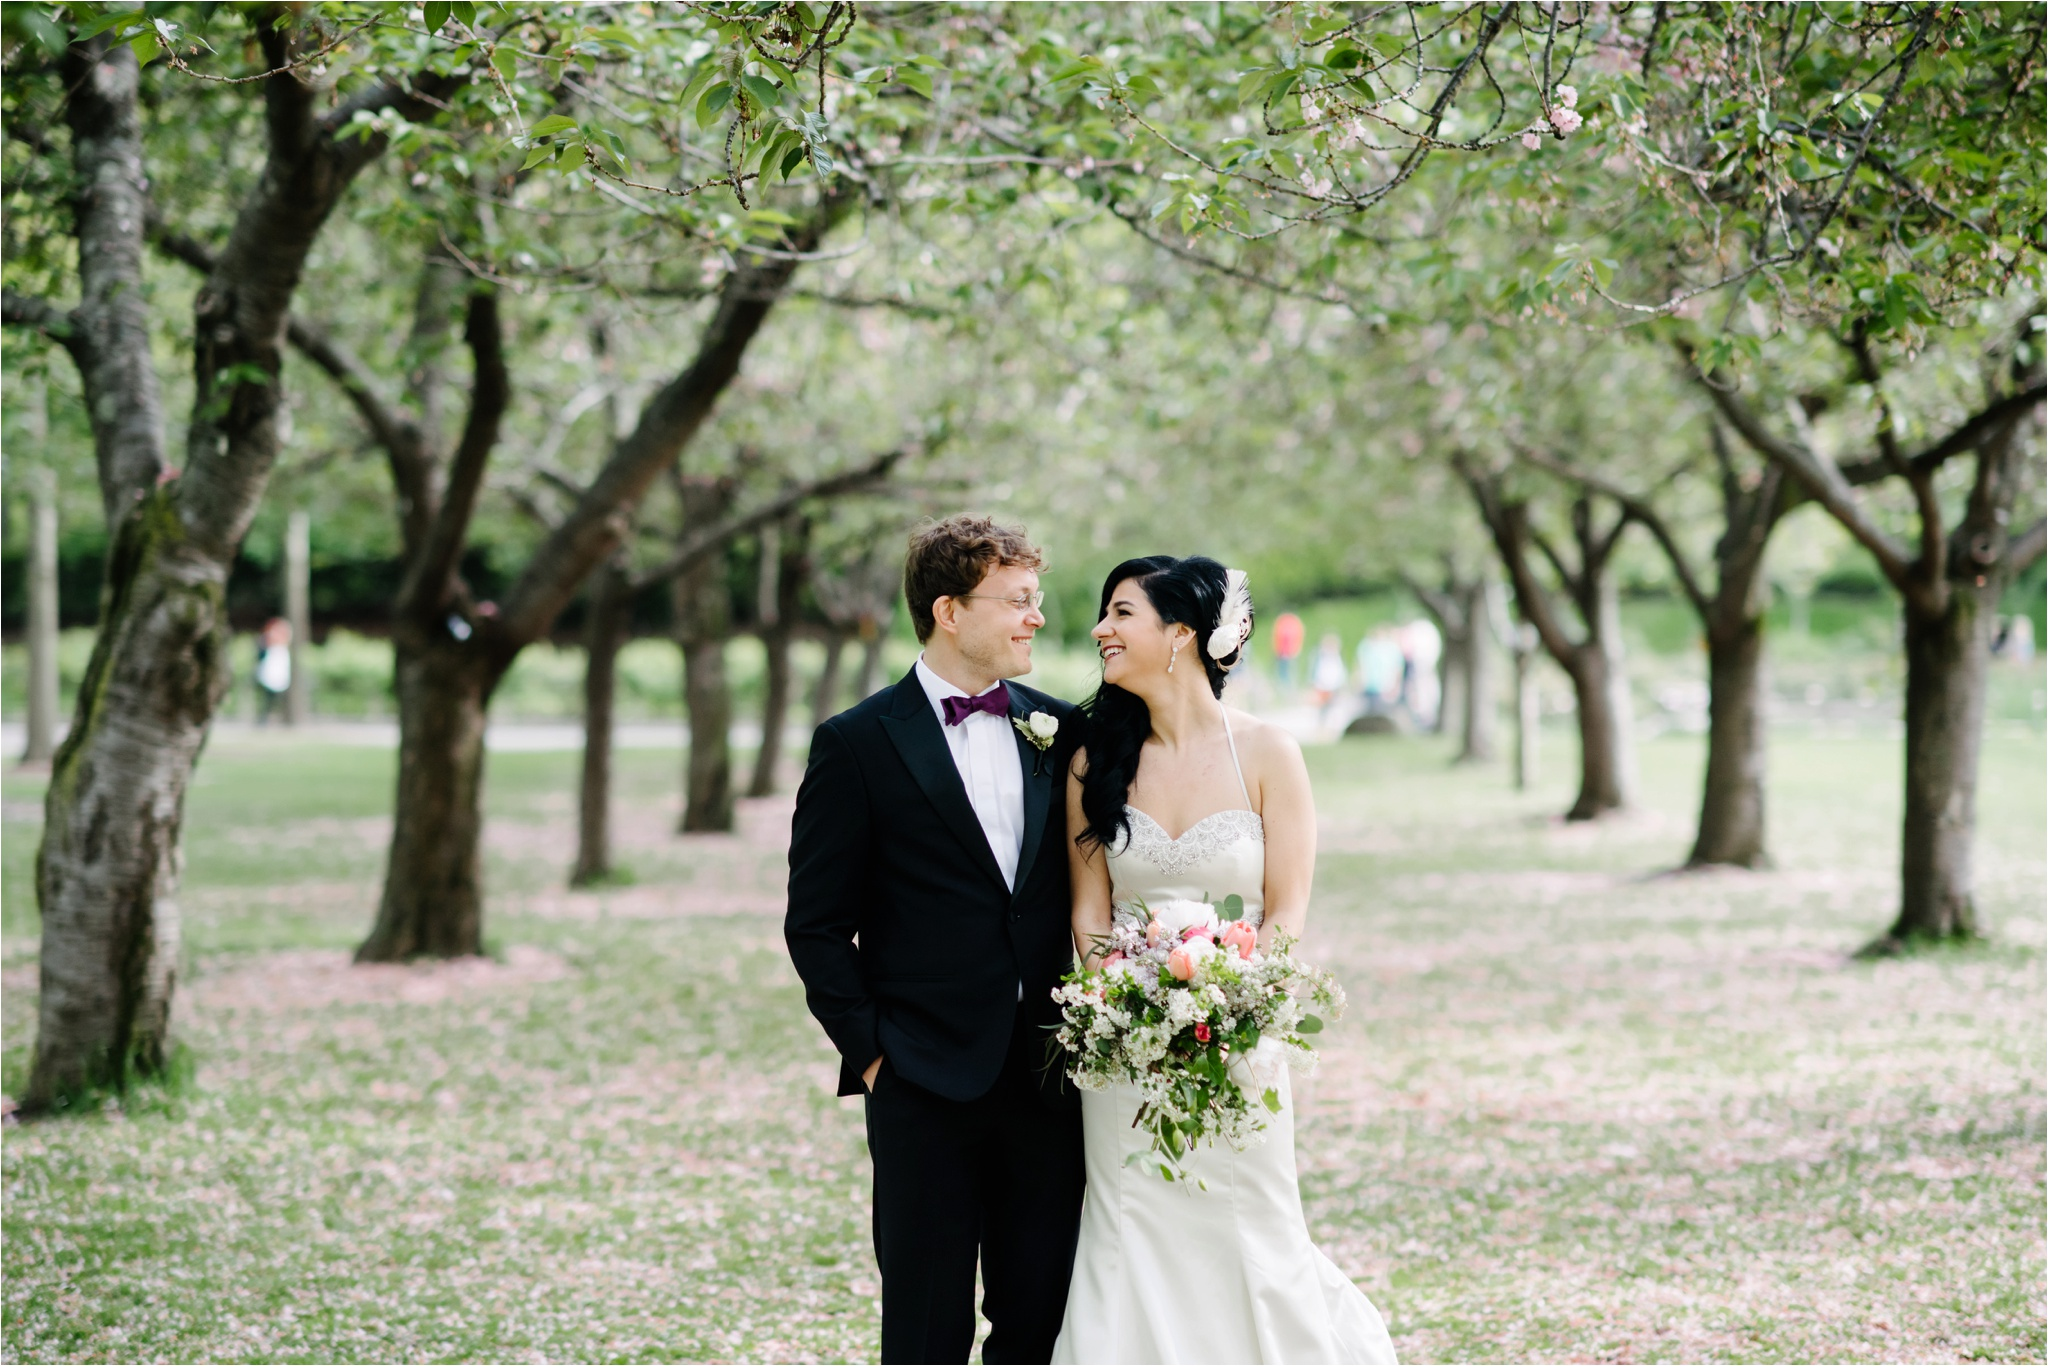 Brian hatton weddings new york wedding photographer brooklyn brian hatton weddings new york wedding photographer brooklyn botanic garden wedding lena and david brooklyn ny brian hatton weddings new york junglespirit Choice Image